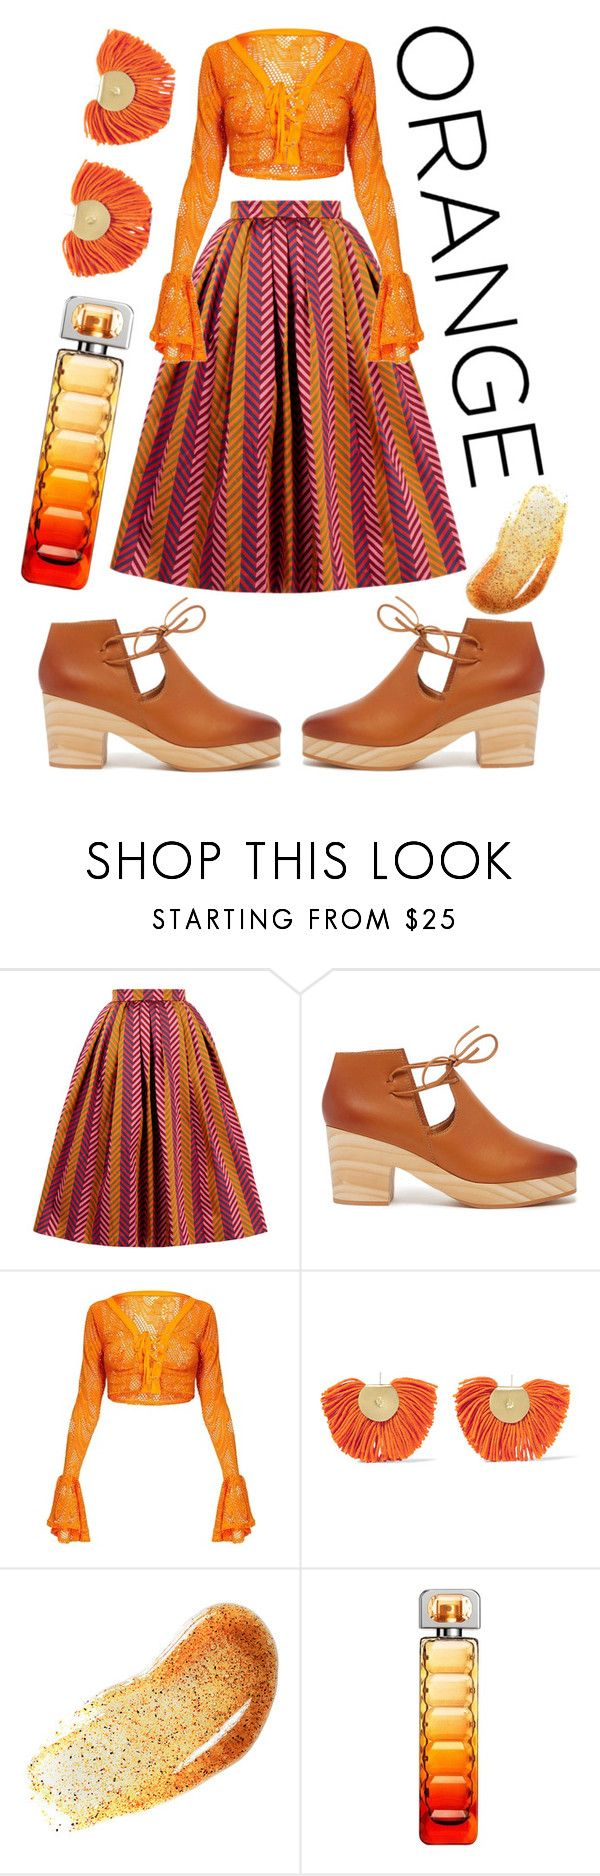 """all orange"" by lovedreamfashion ❤ liked on Polyvore featuring House of Holland, Kelsi Dagger Brooklyn, Katerina Makriyianni, HUGO and orange"